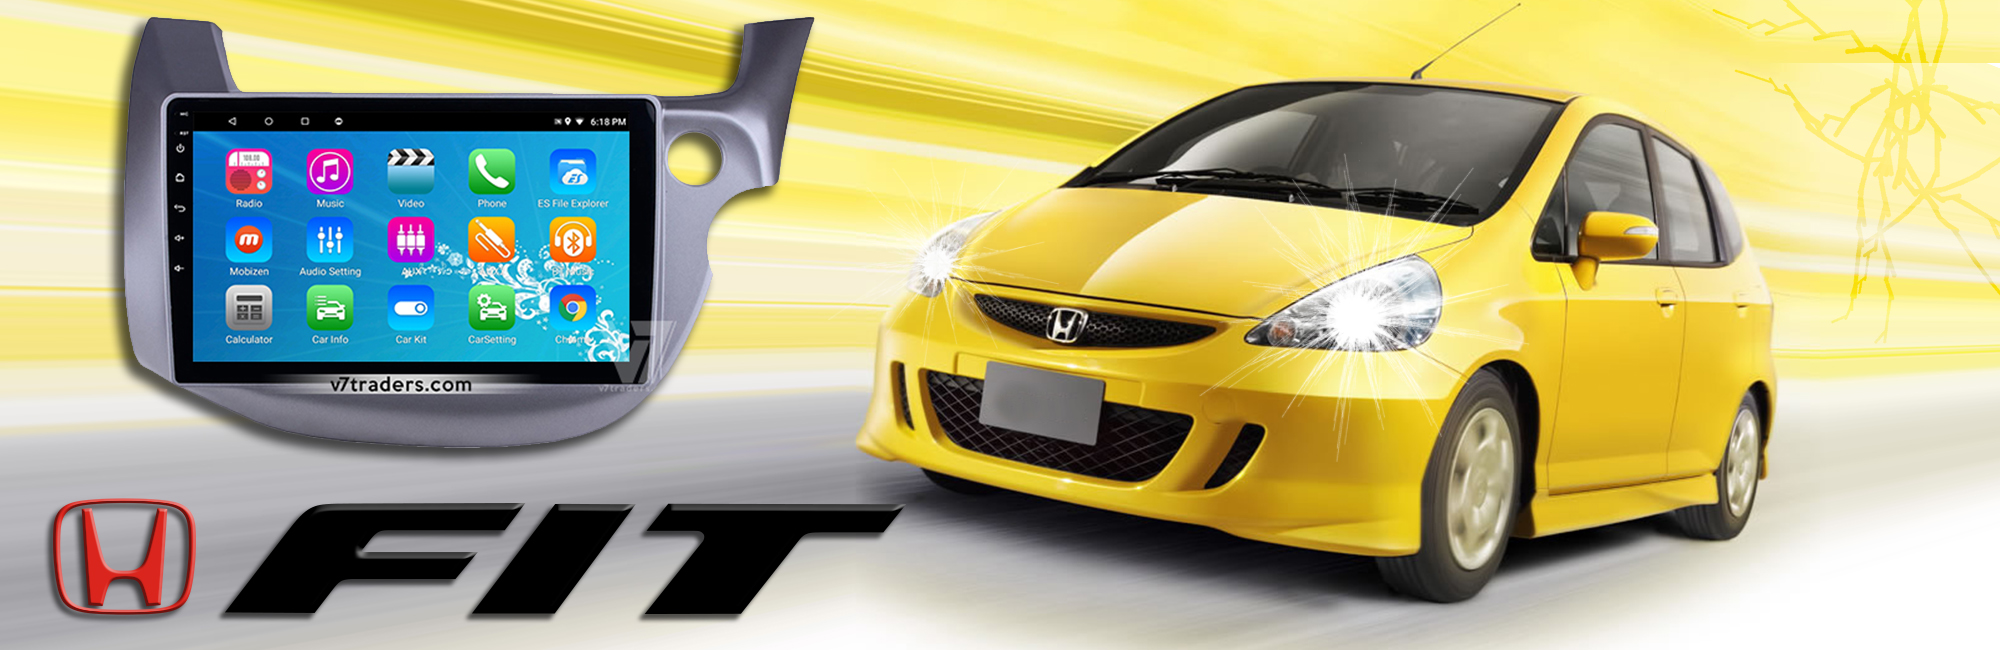 Honda Fit Android Navigaation Slider